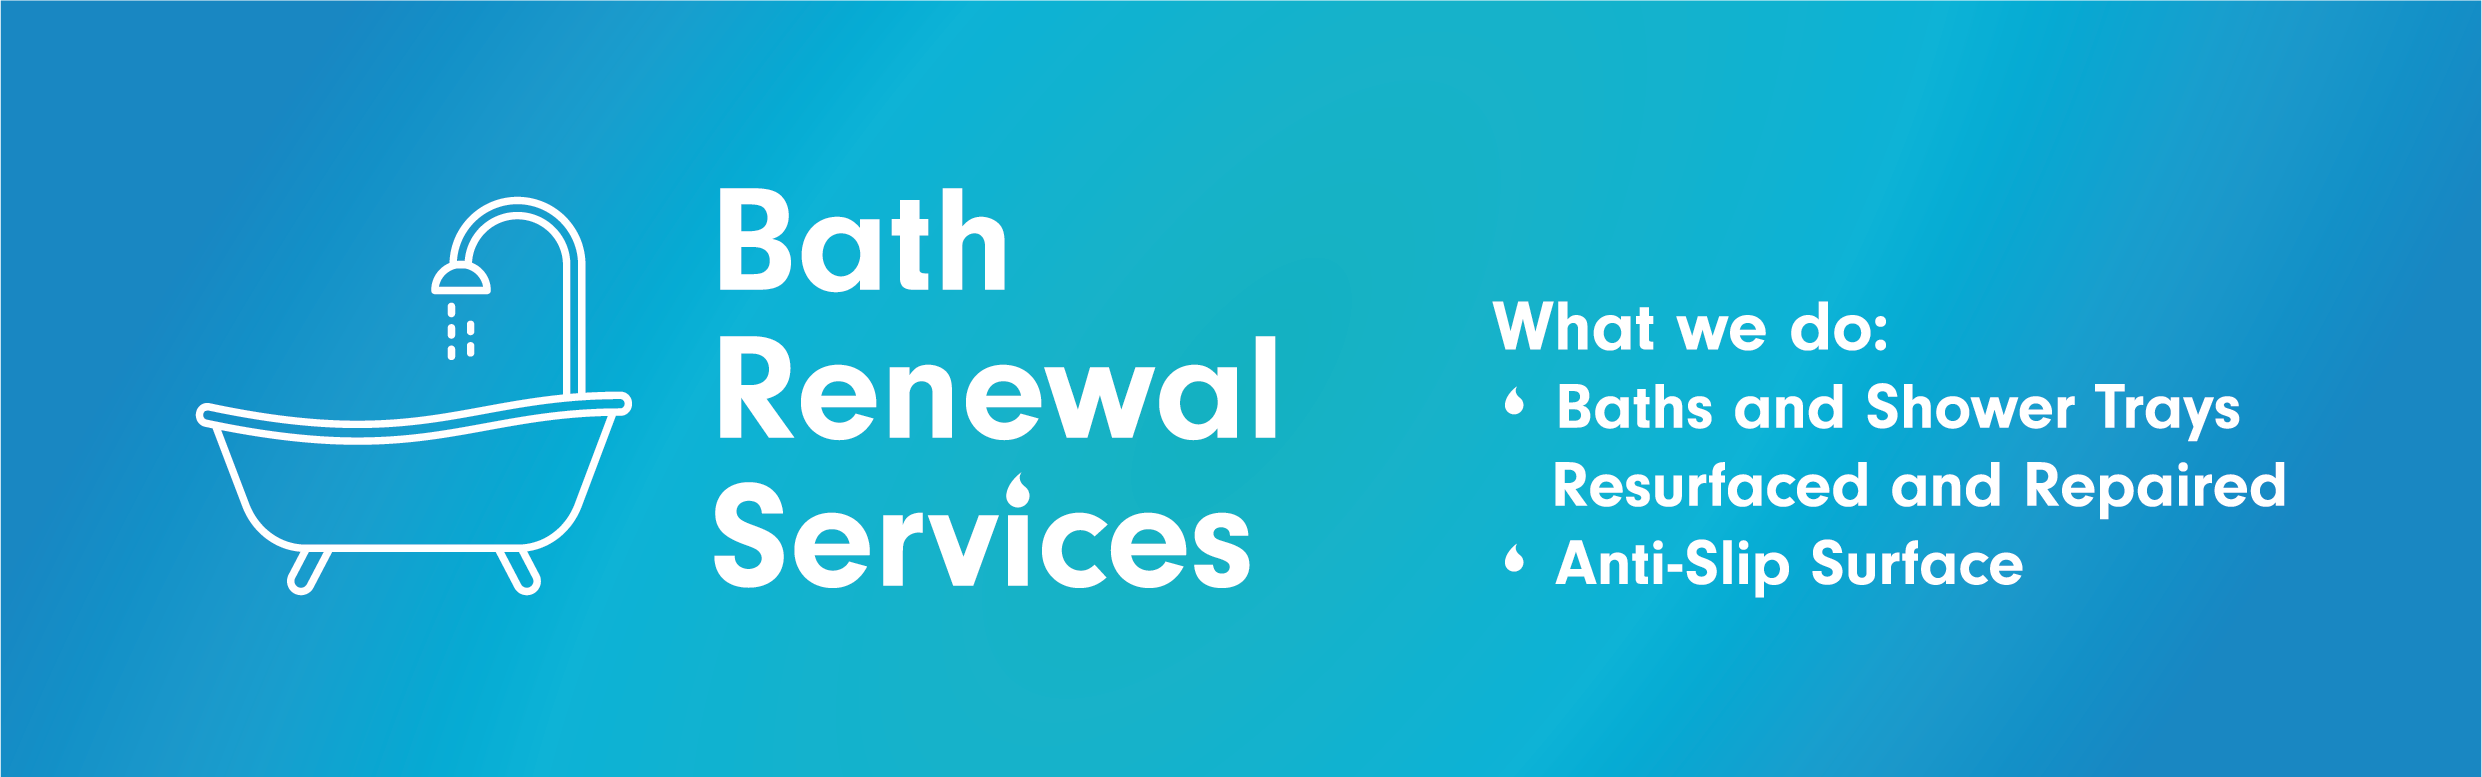 Bath Renewal Services